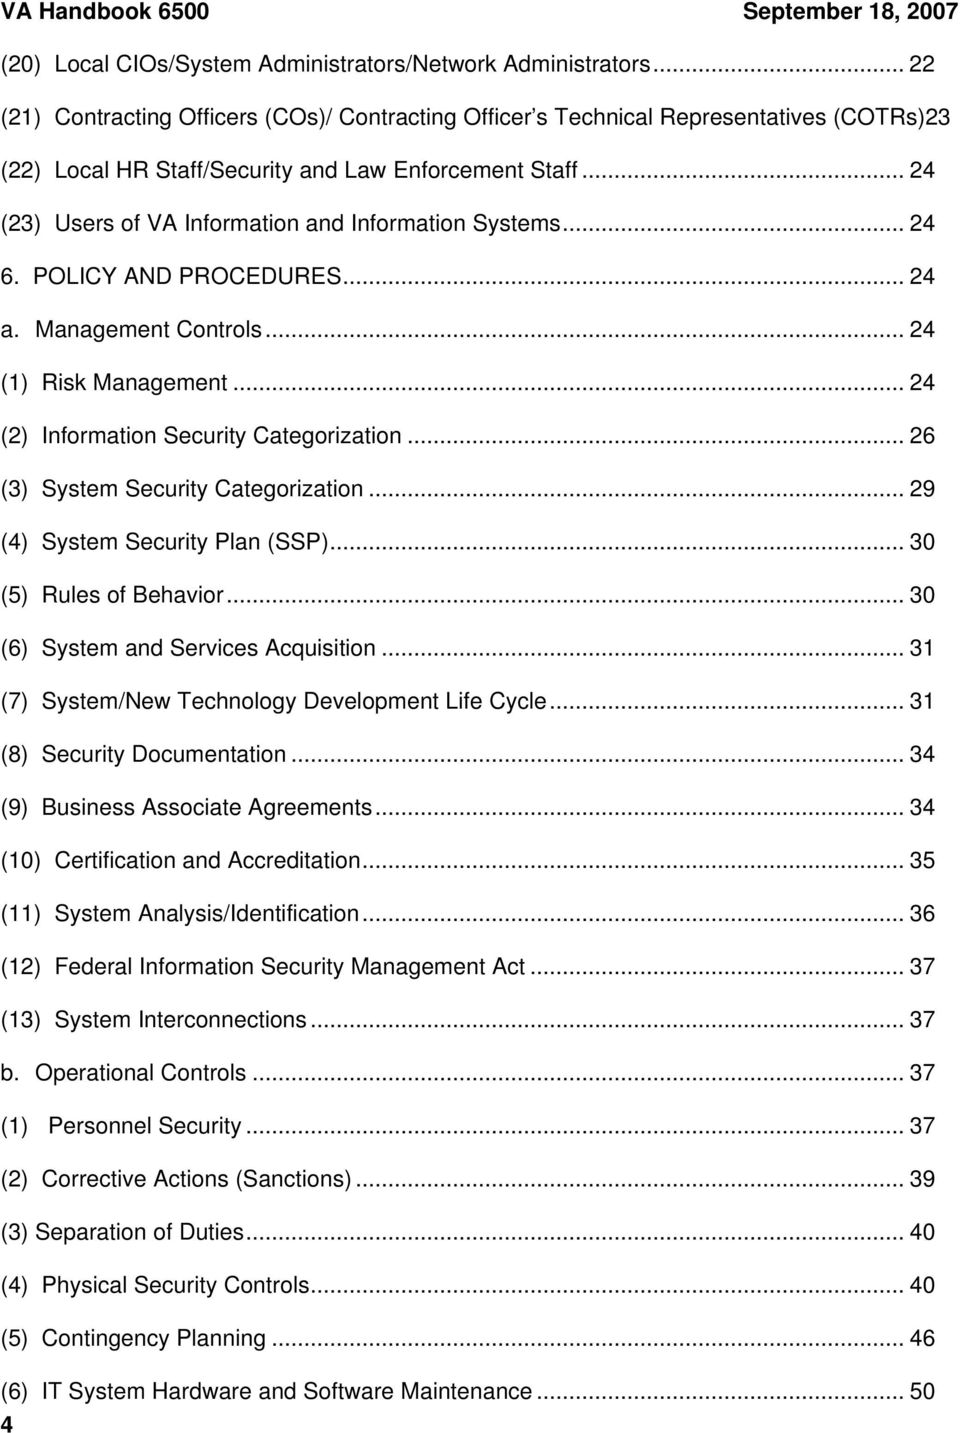 .. 24 (23) Users of VA Information and Information Systems... 24 6. POLICY AND PROCEDURES... 24 a. Management Controls... 24 (1) Risk Management... 24 (2) Information Security Categorization.